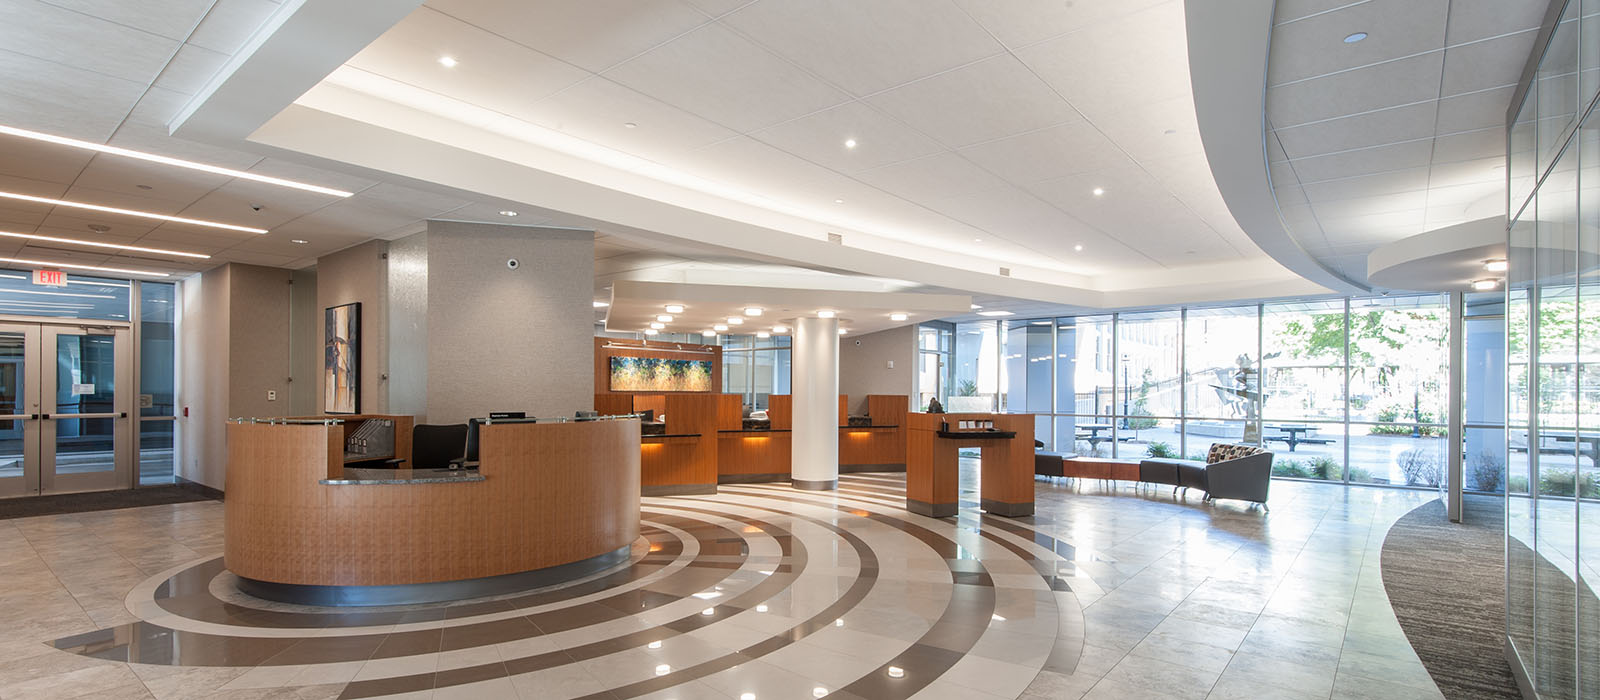 Fidelity Bank Headquarters Lobby Remodel in Wichita Kansas by WDM Bank Architects & Interior Designers